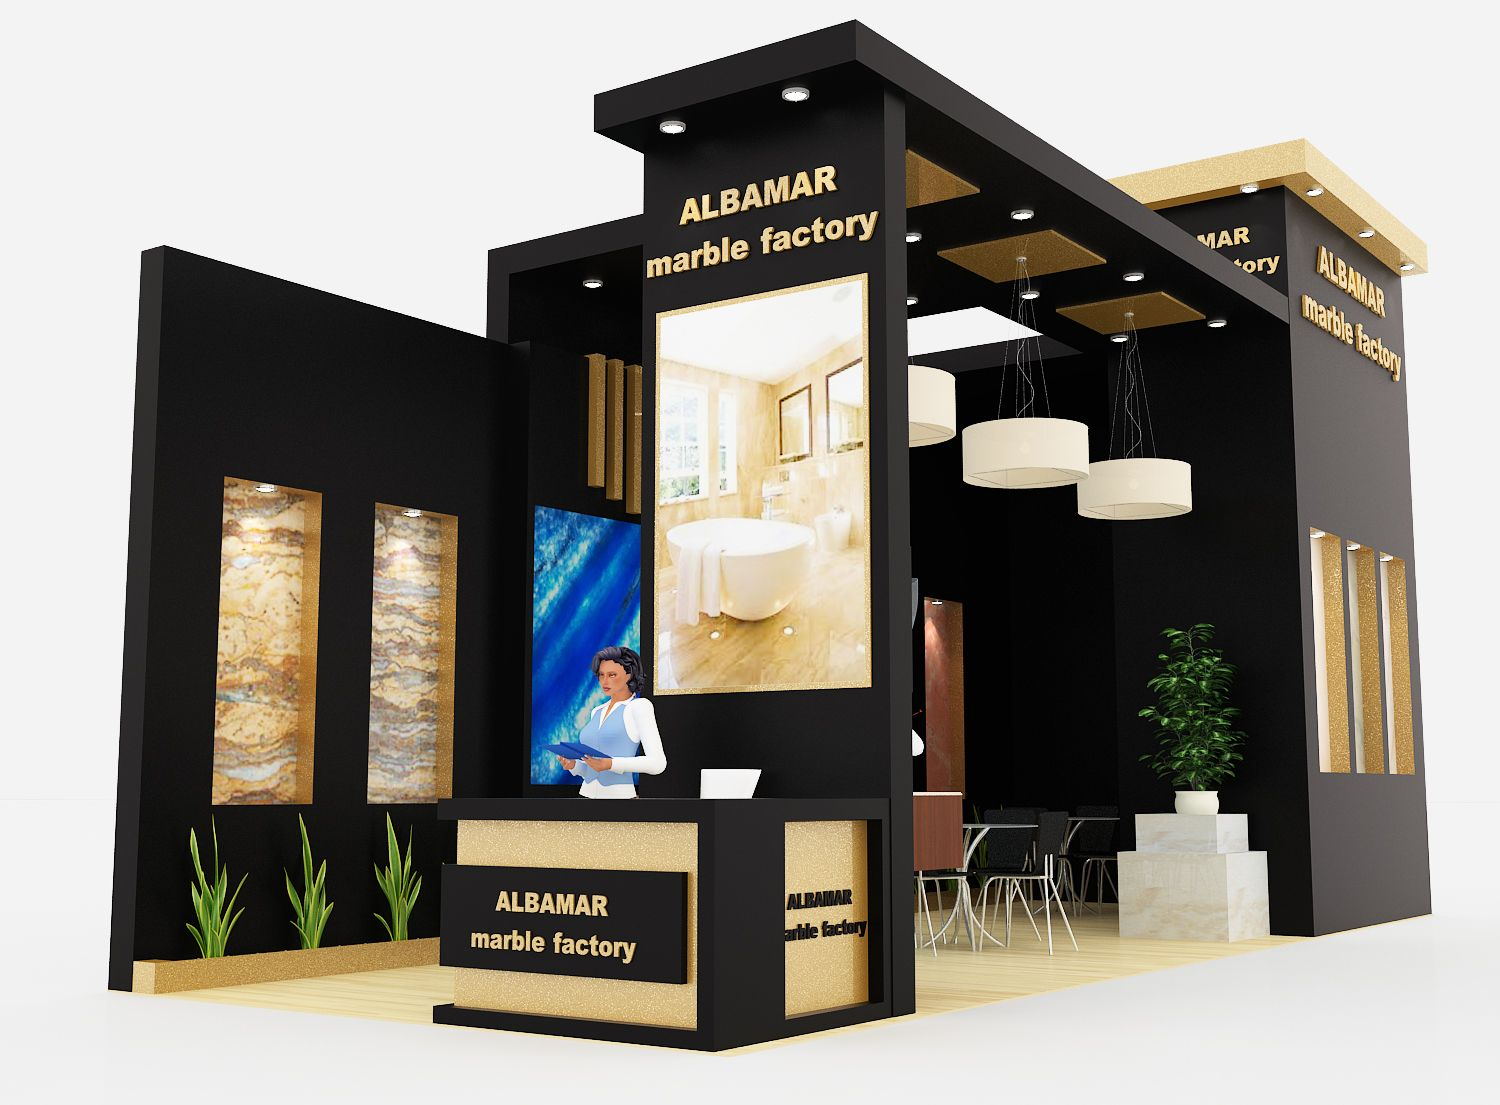 Exhibition Stand Designers Amp Builders : Albamar marble exhibition stand design stand exhibition stand